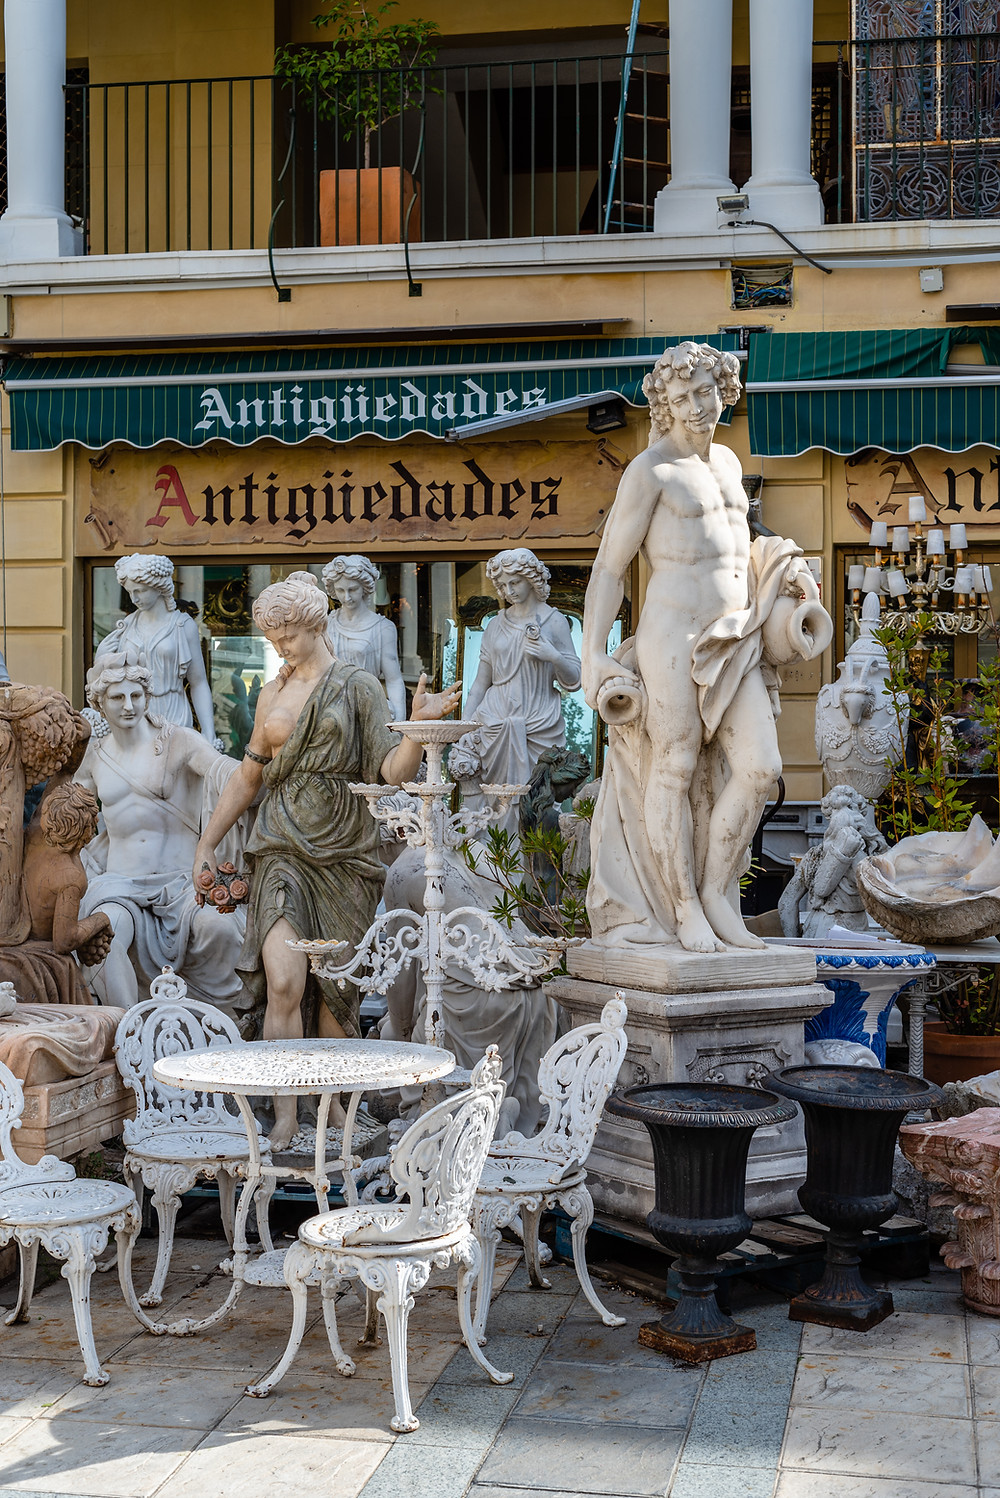 sculptures and garden furniture in an antique store in El Rastro